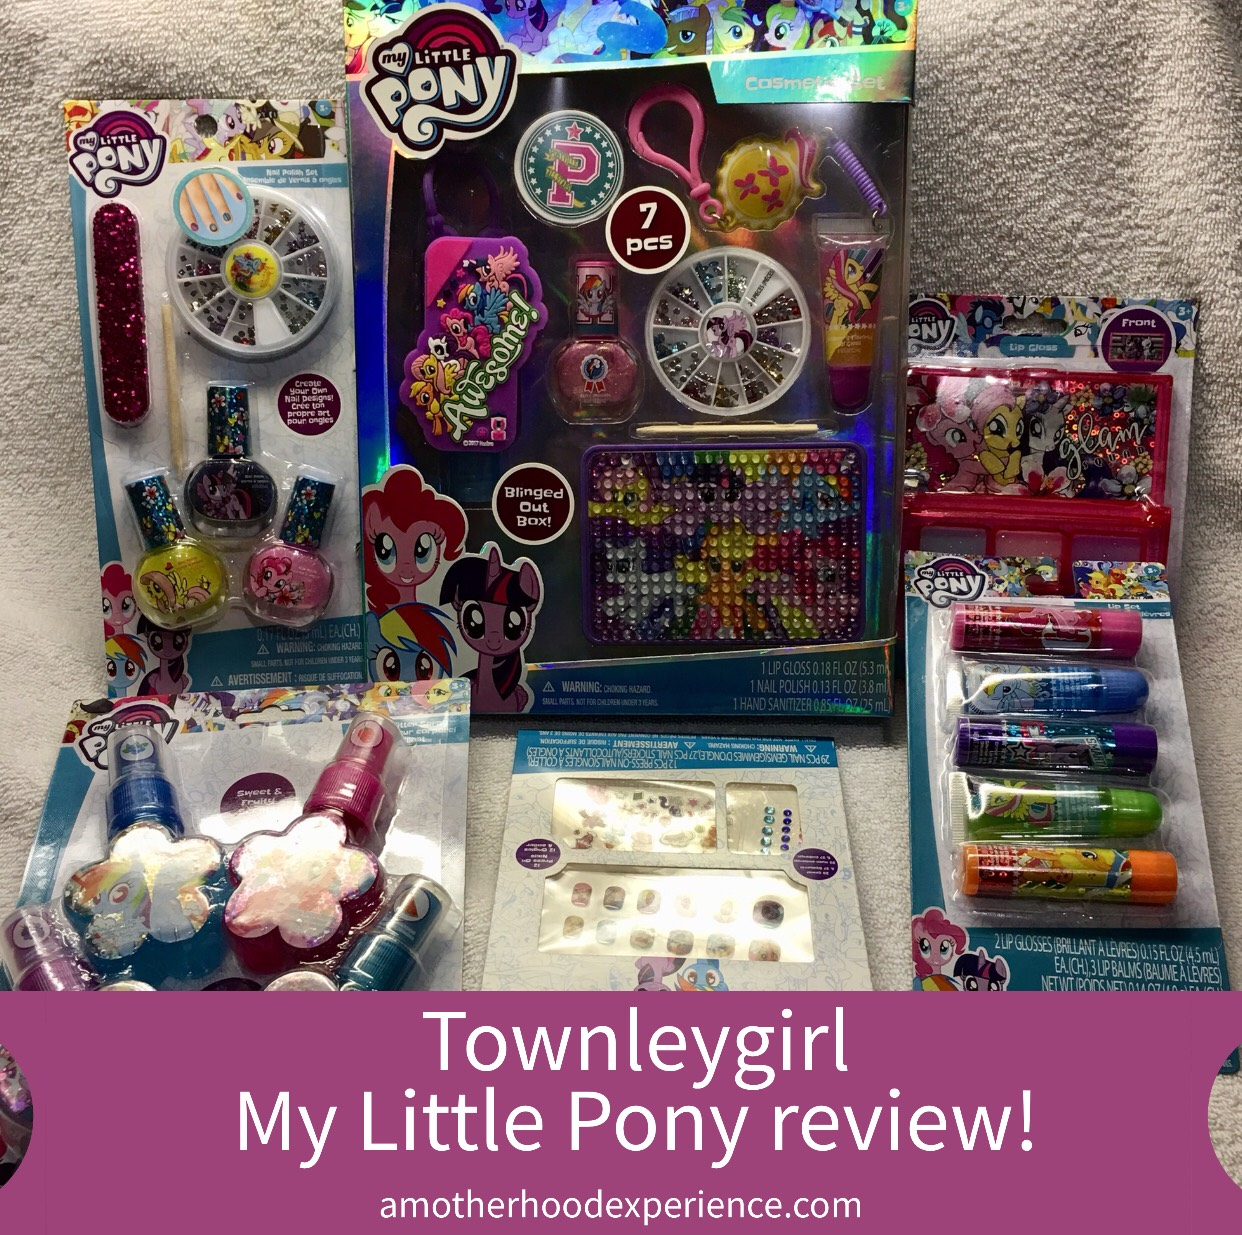 Townleygirl - My Little Pony Kids Cosmetic Kits Review! ~ A